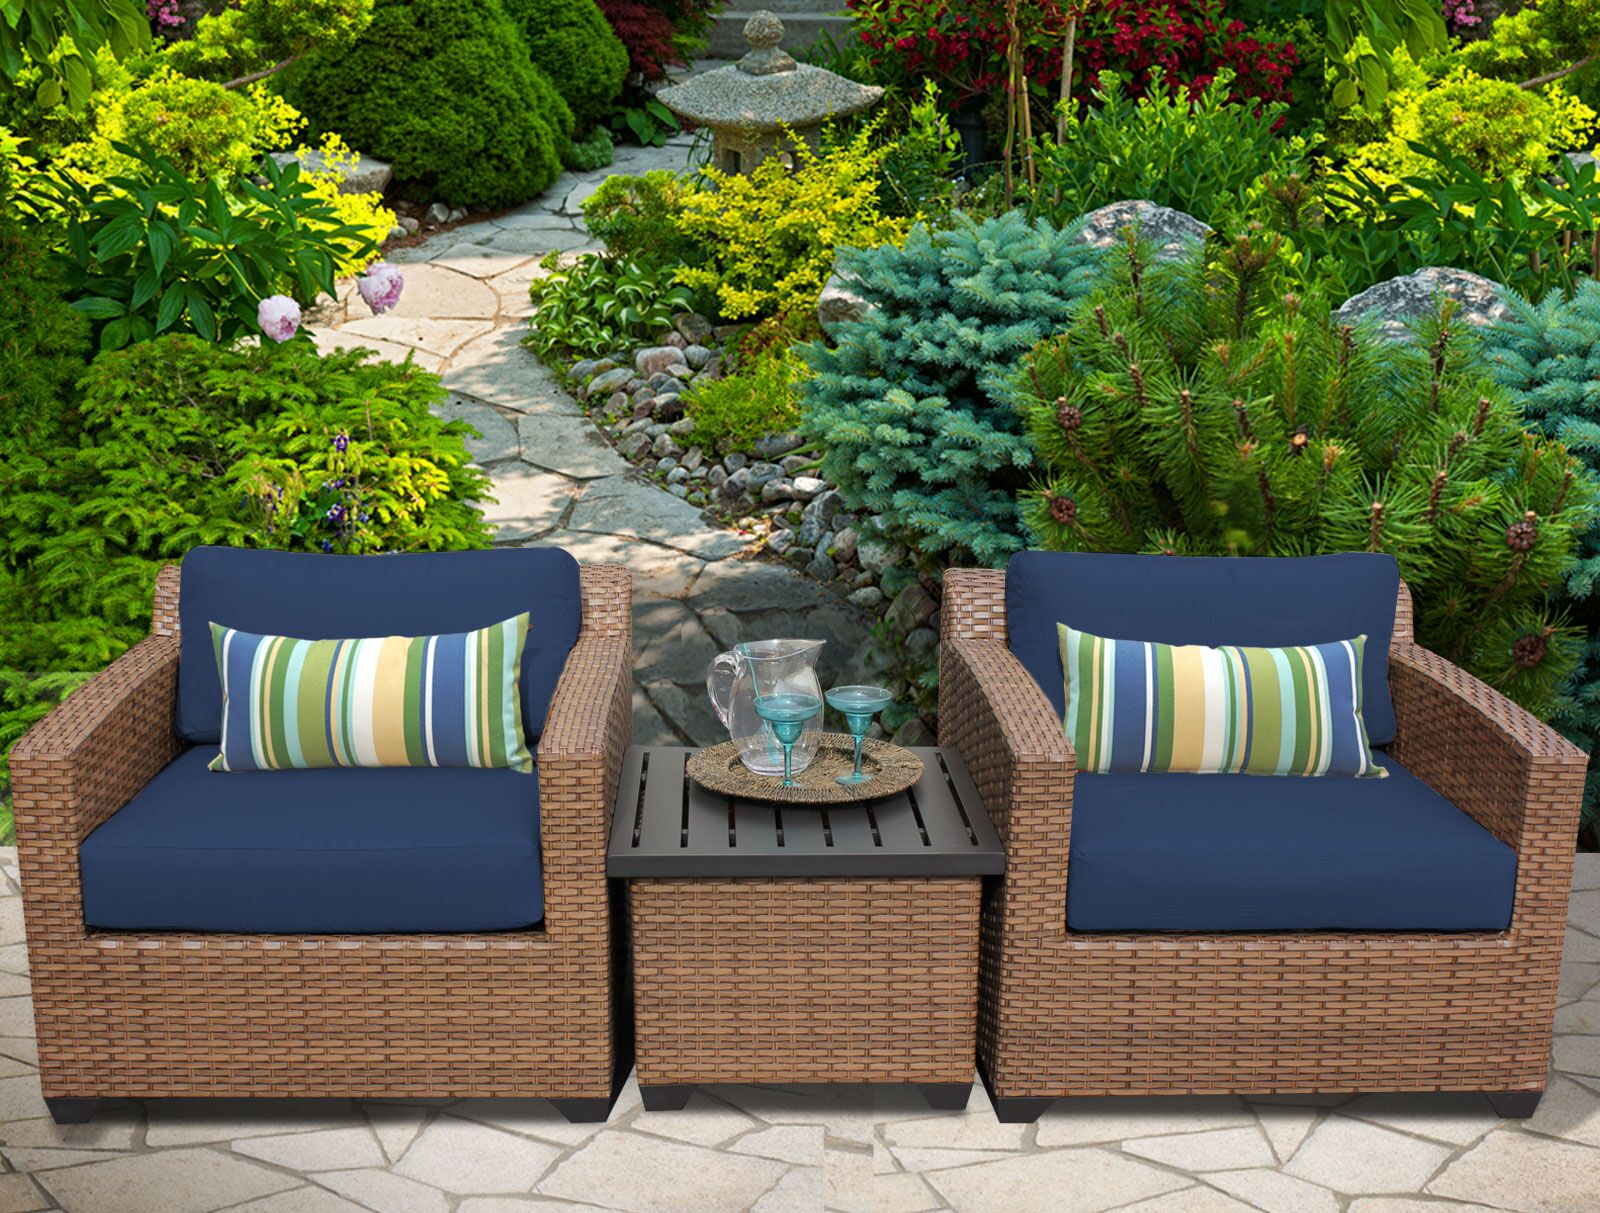 East Village 3 Piece Rattan Sectional Set with Cushions Color: Navy